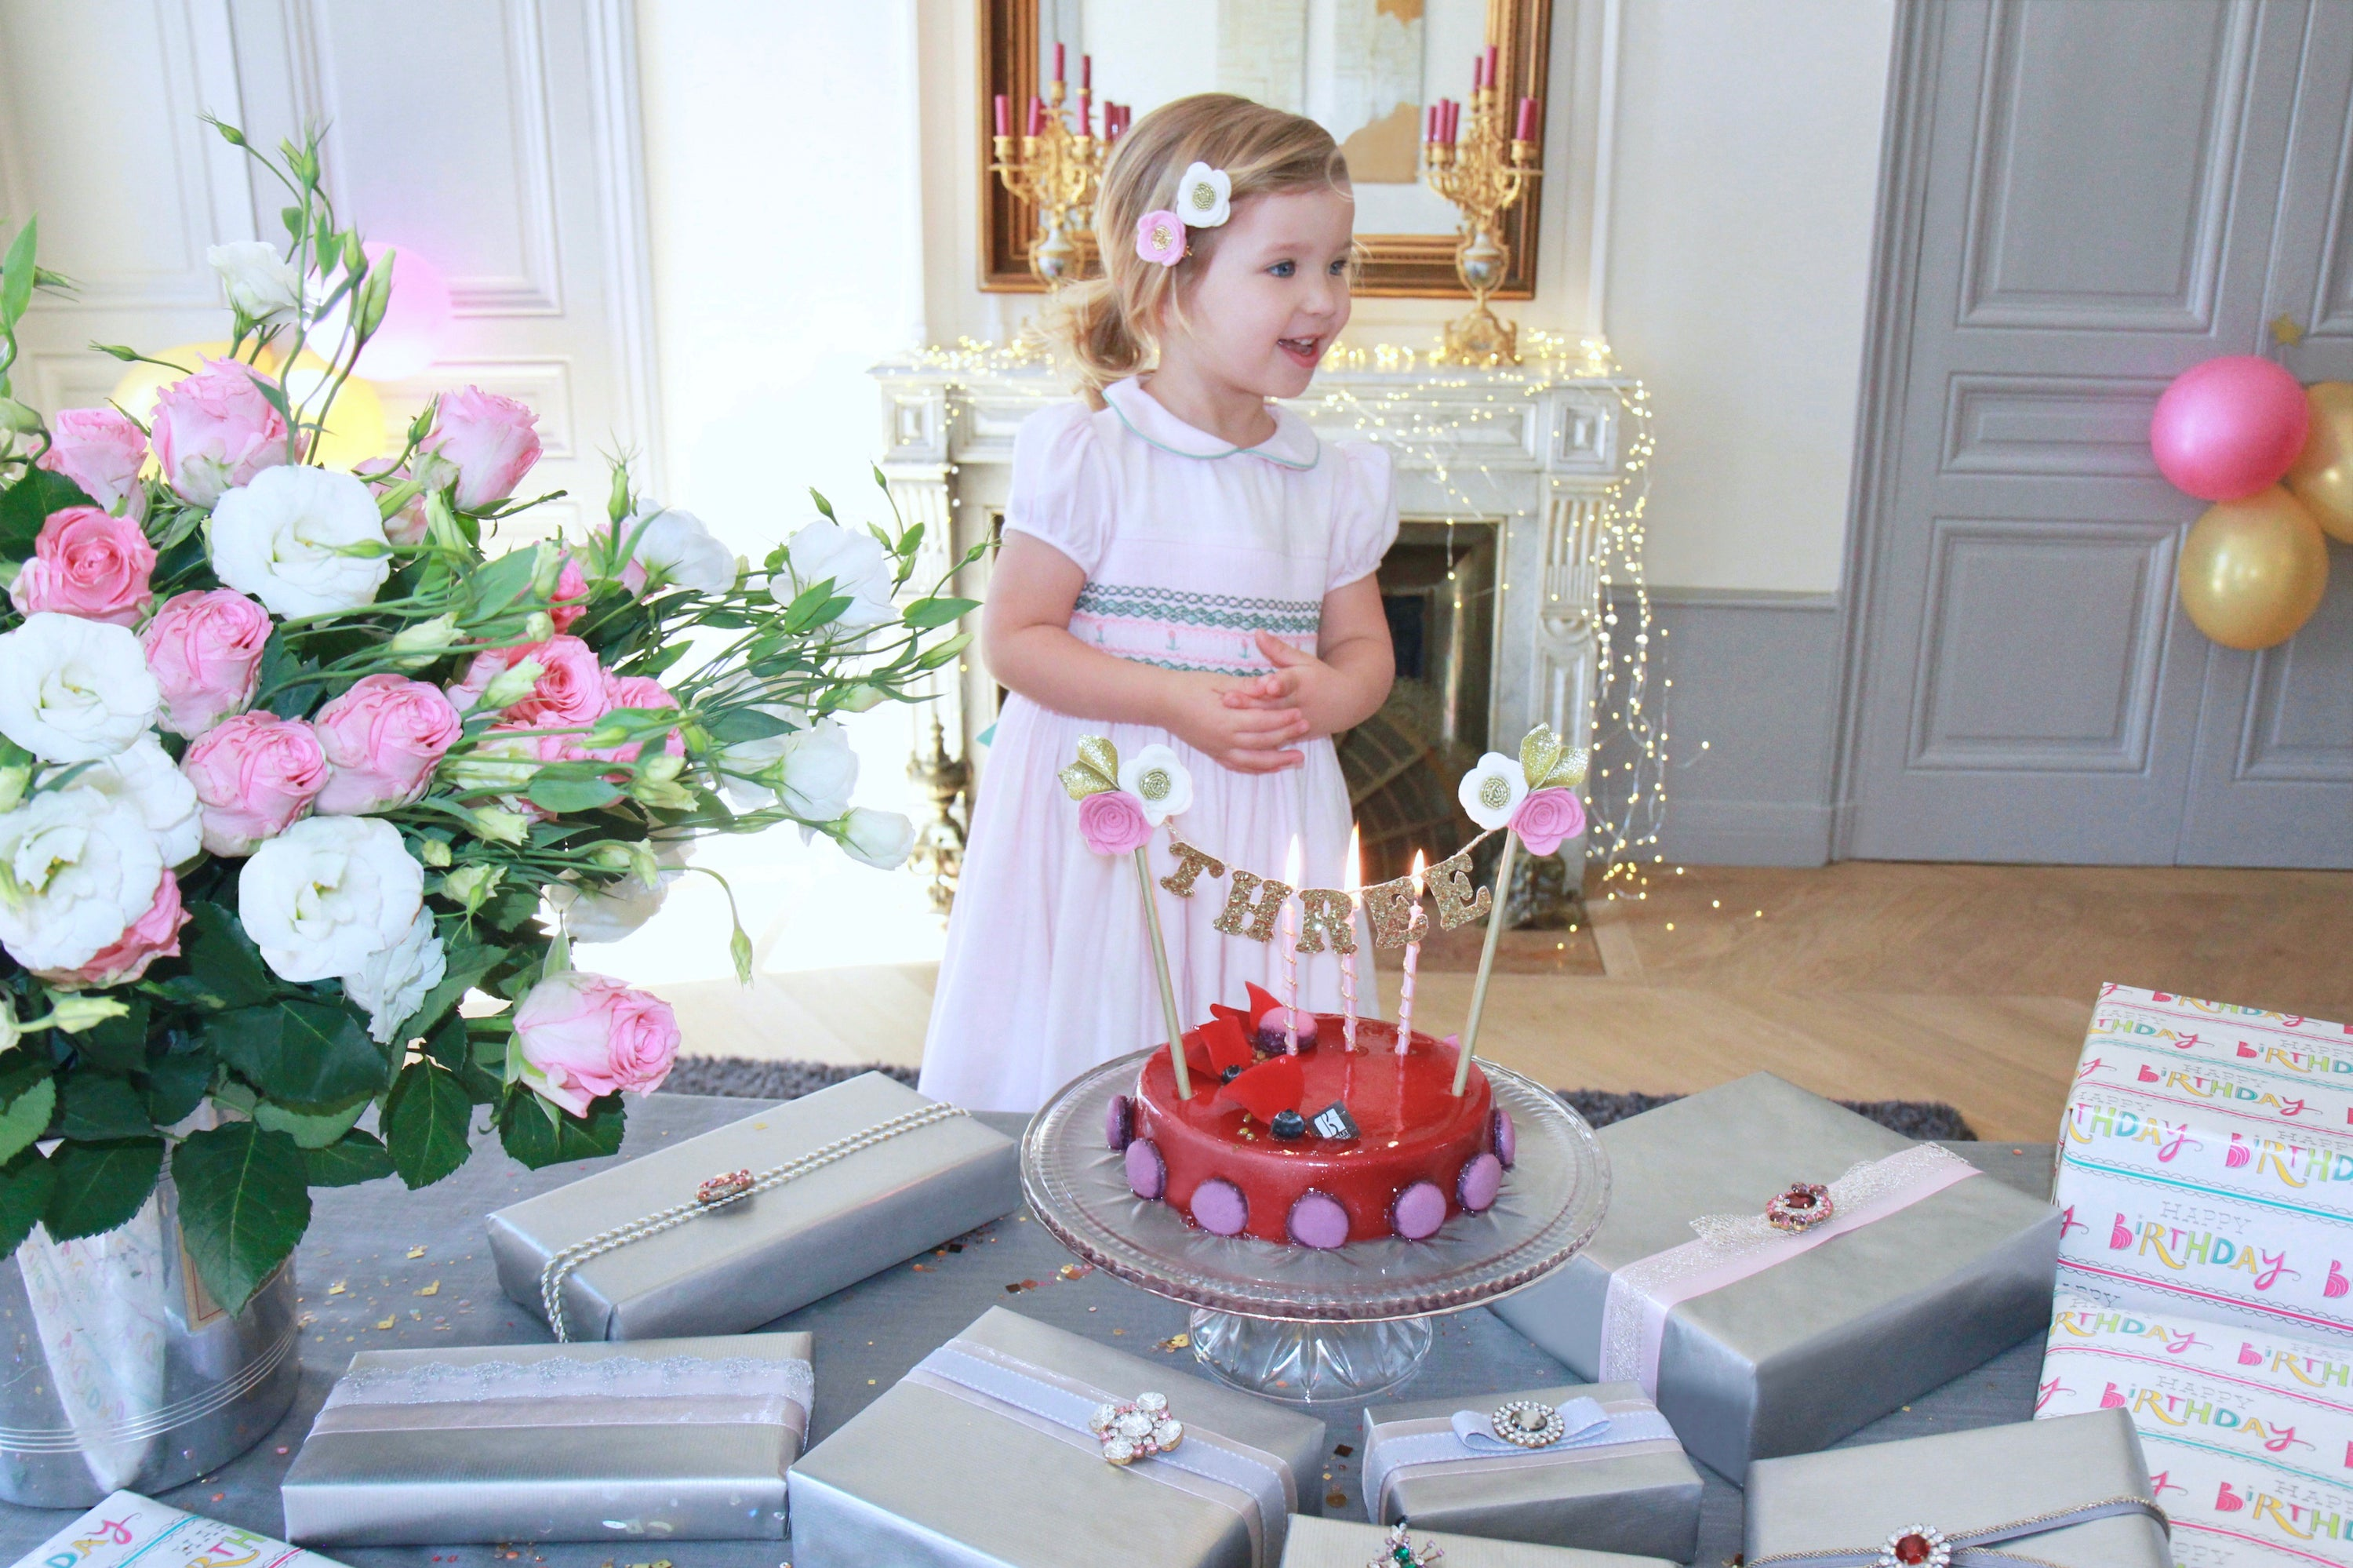 charlotte sy dimby pink birthday party smocked dresses treasure box ideas to keep children happy and busy covid